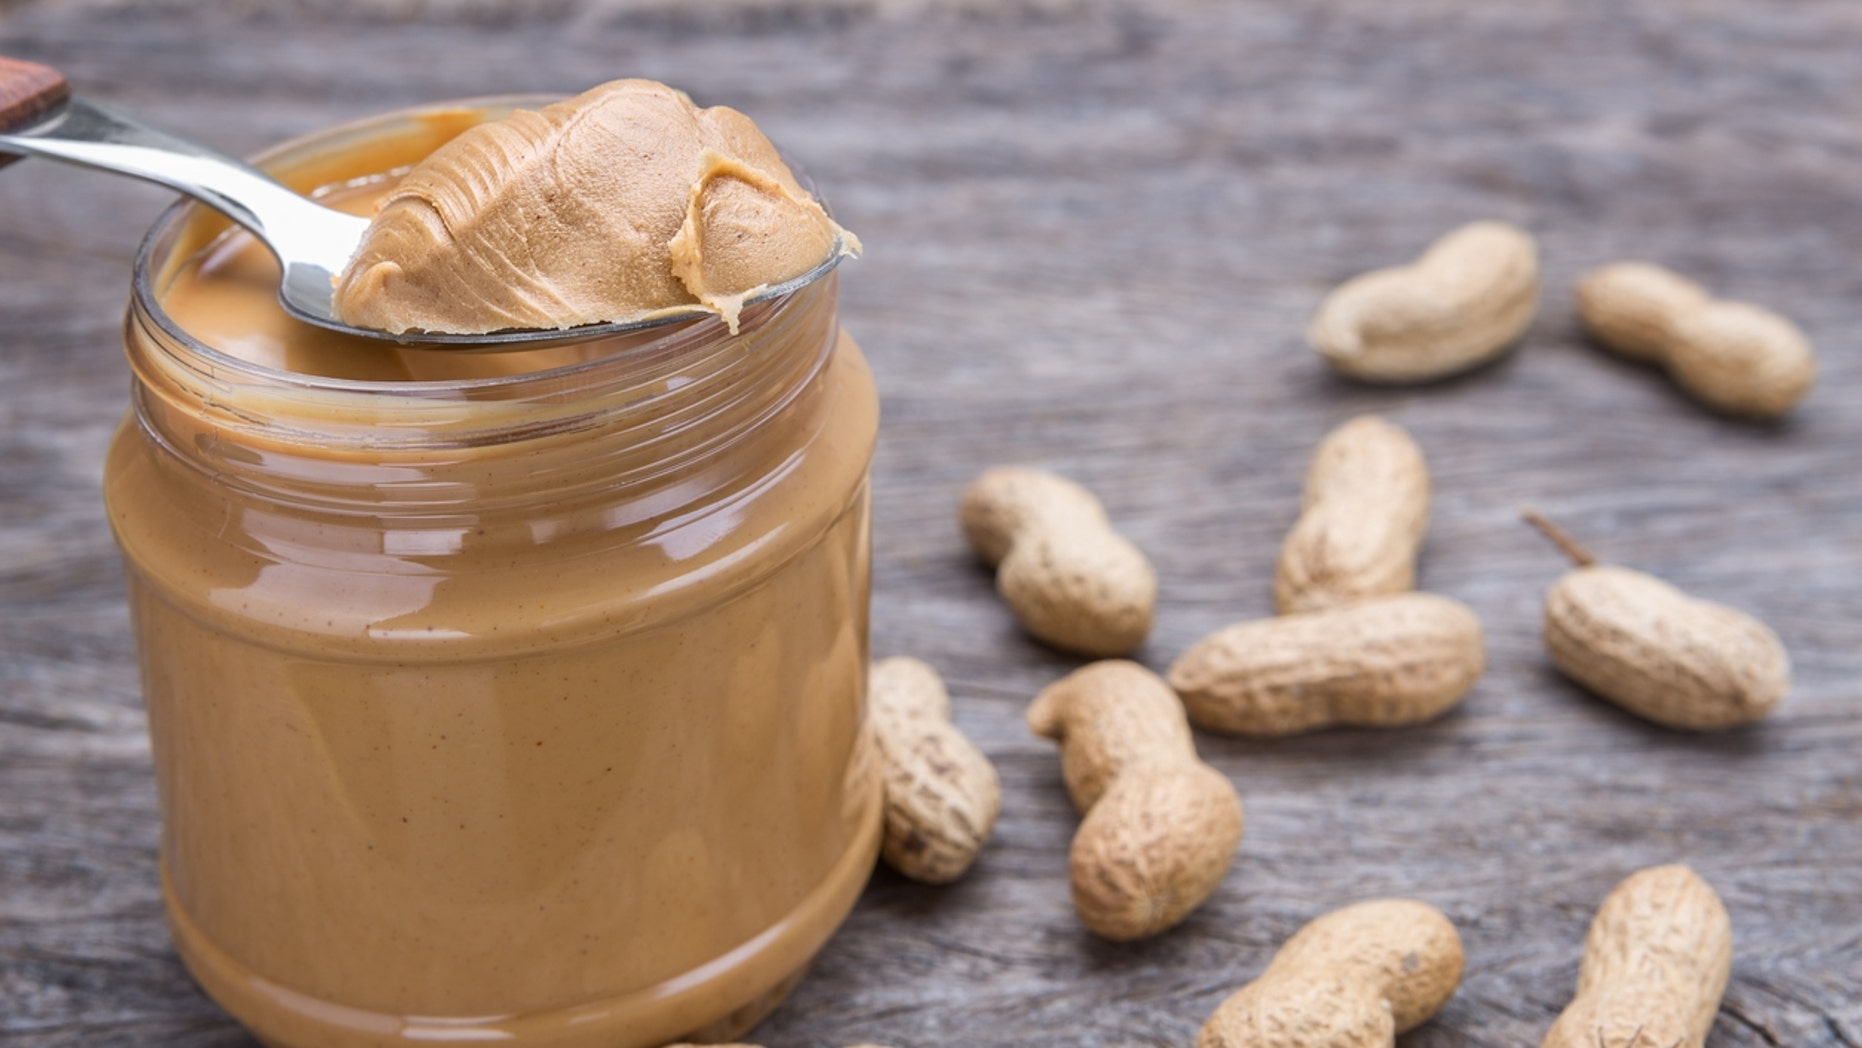 Peanut butter is more than a tasty snack, it's actually quite useful around the house.